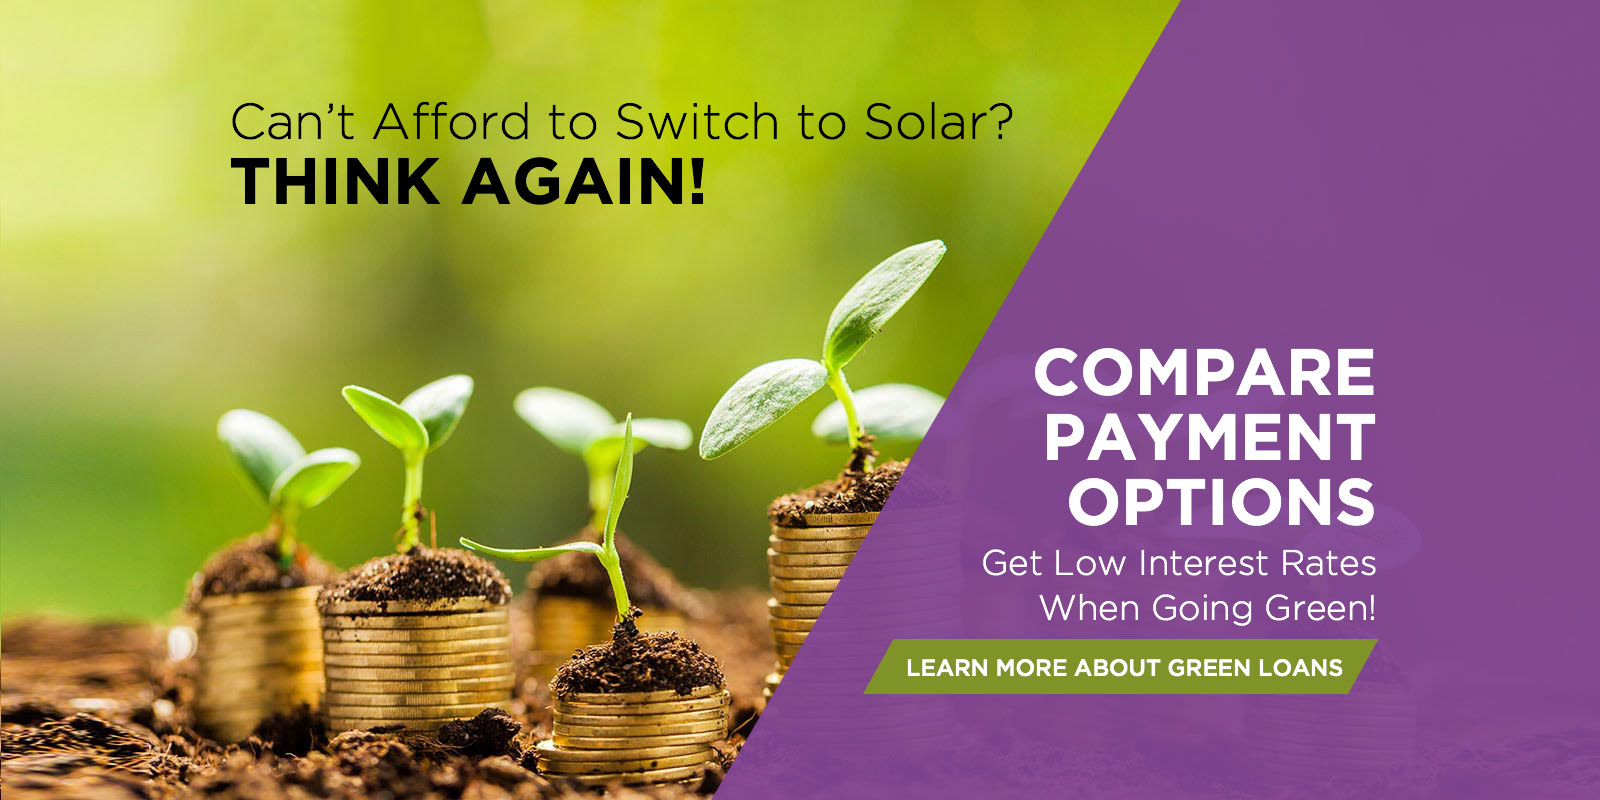 Can't Afford to Switch to Solar? Think Again! Compare Payment Options. Get Low Interest Rates When Going Green!